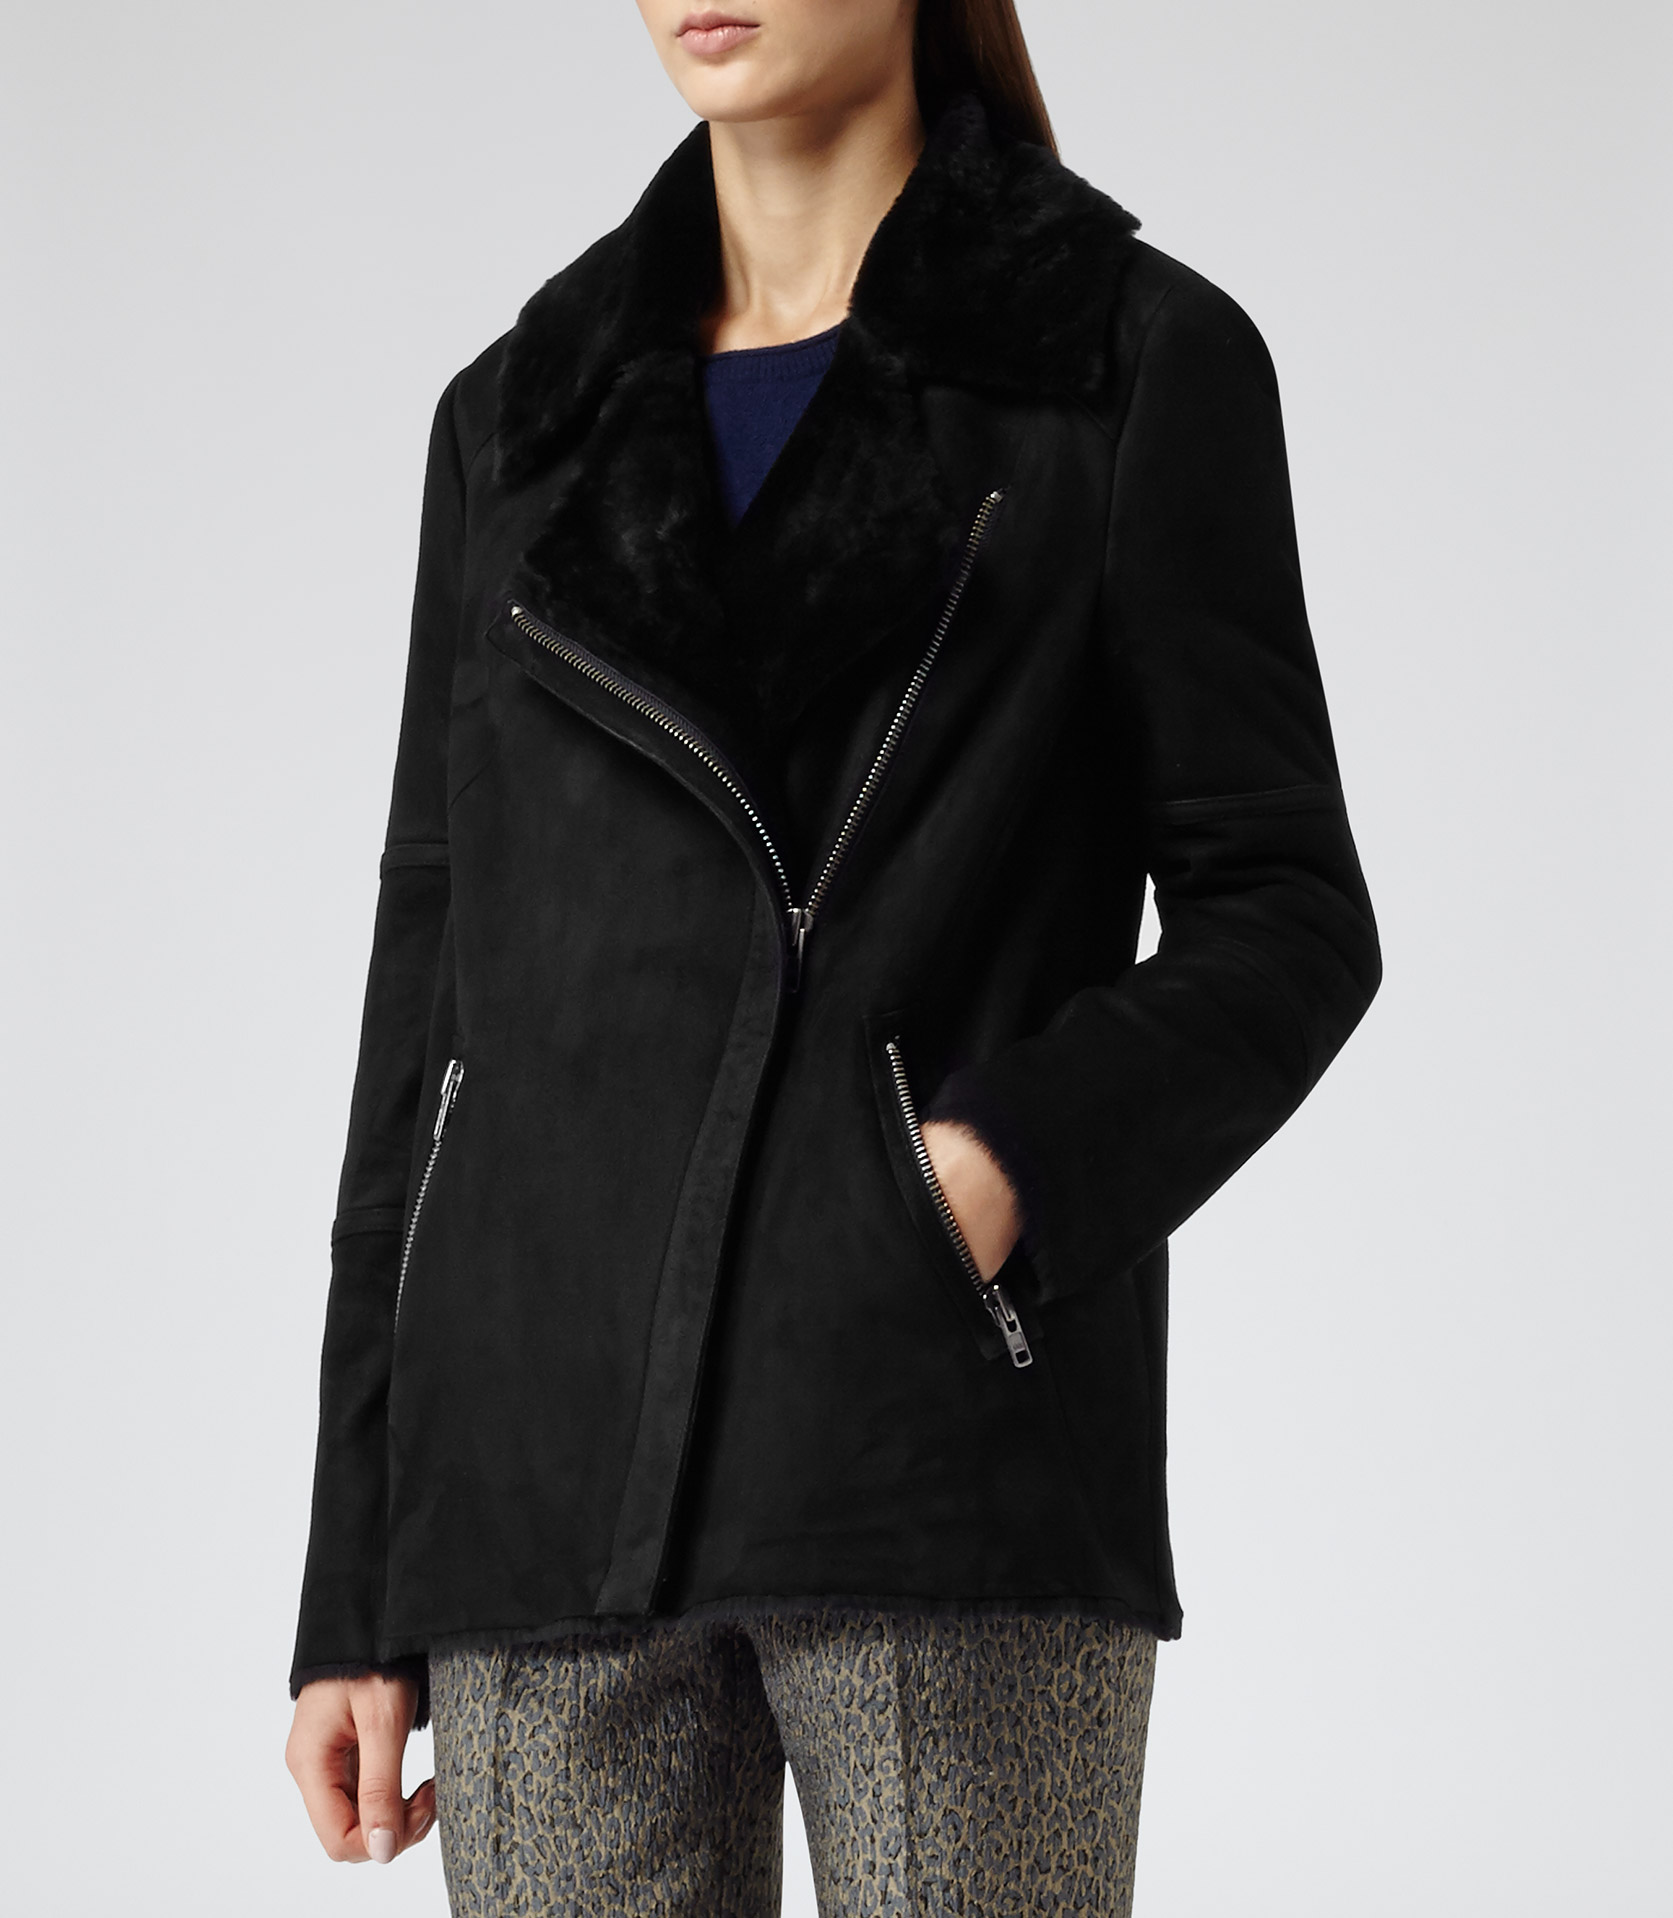 Reiss Annecy Shearling Leather Coat in Black | Lyst